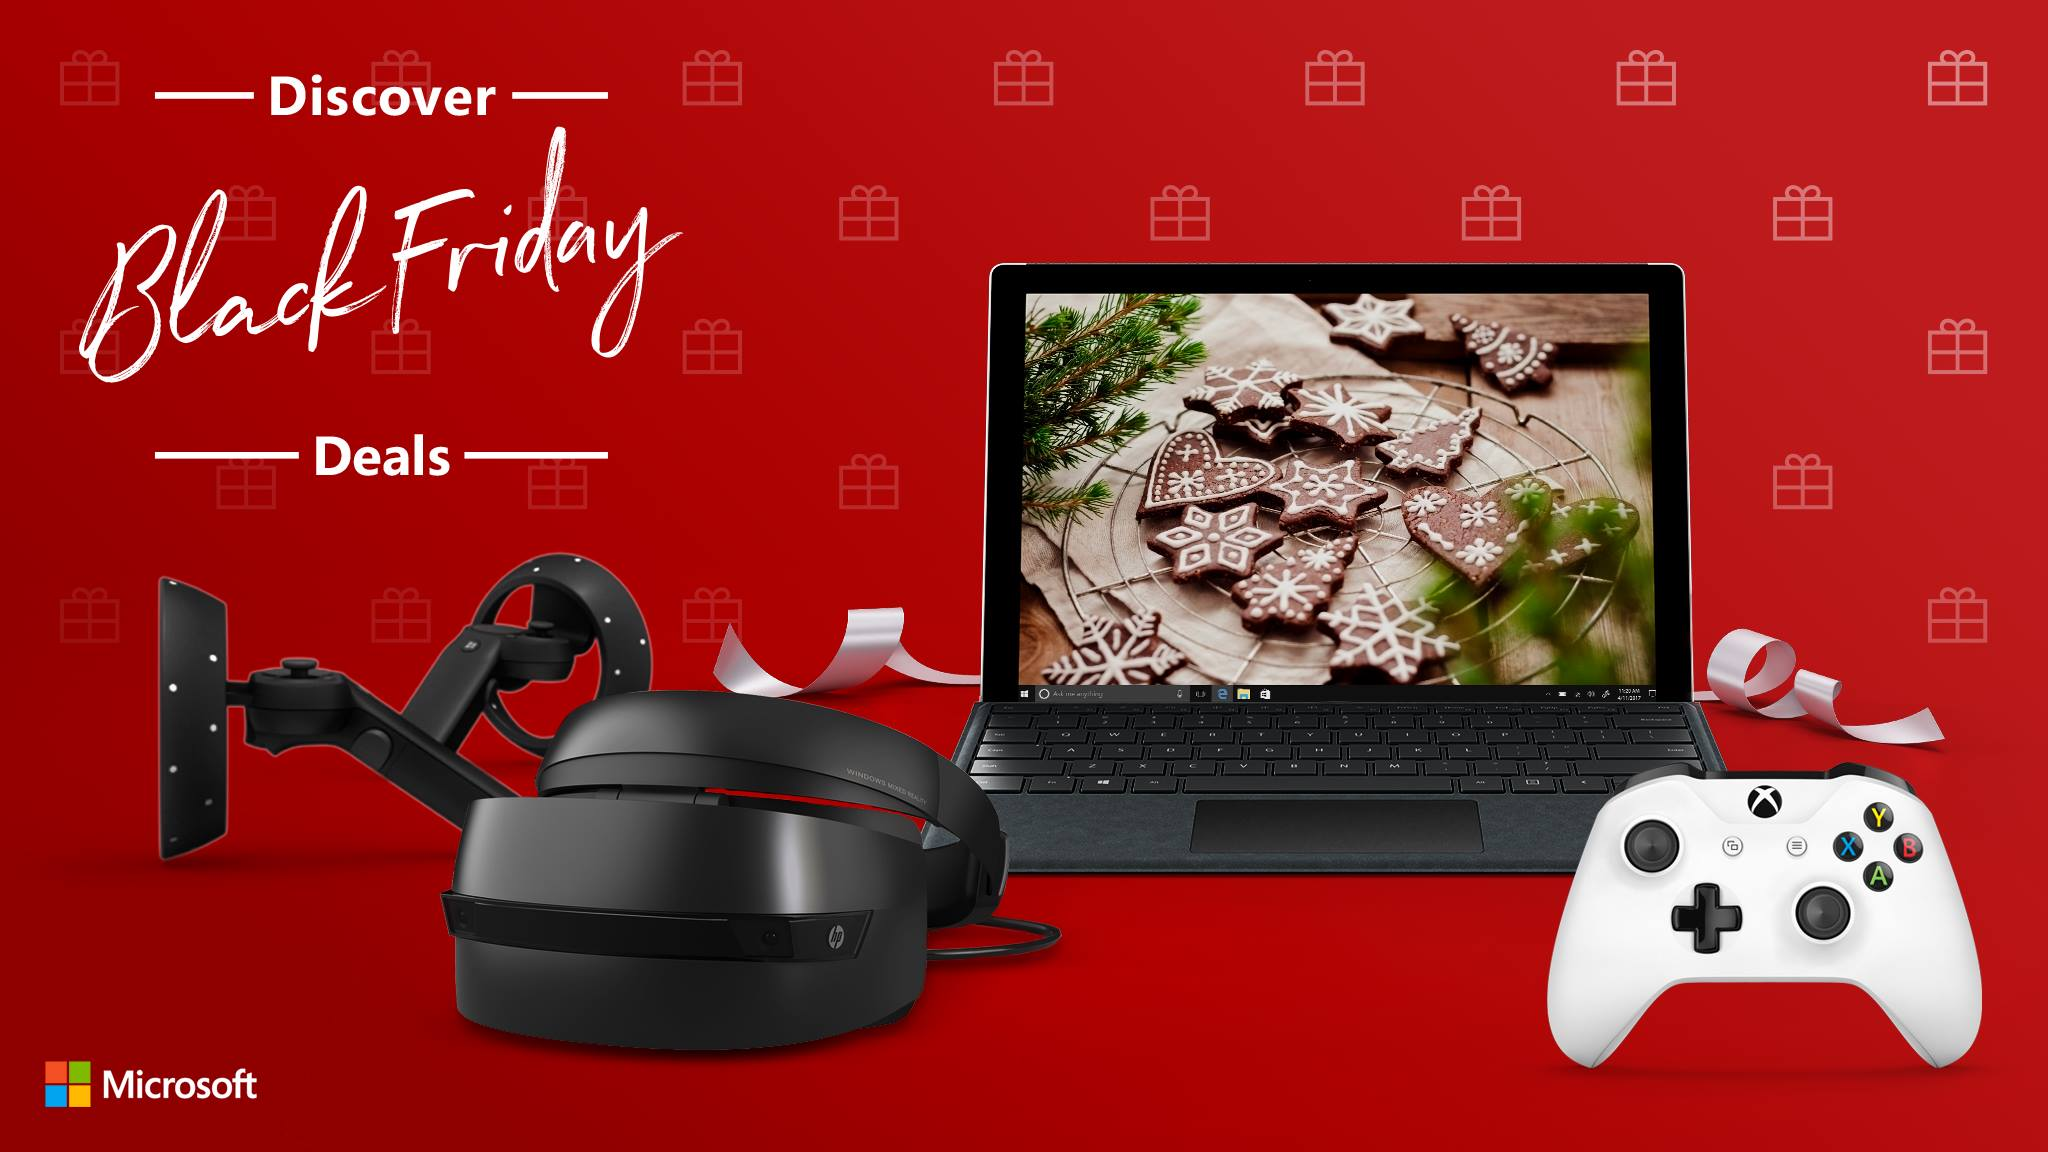 Black Friday Deals Whether you're buying for a gamer, a social media maven, a budding photographer, a fitness fiend or someone who just wants to stay connected when it matters most, our Black Friday deals put the latest technology within reach – and within your budget.